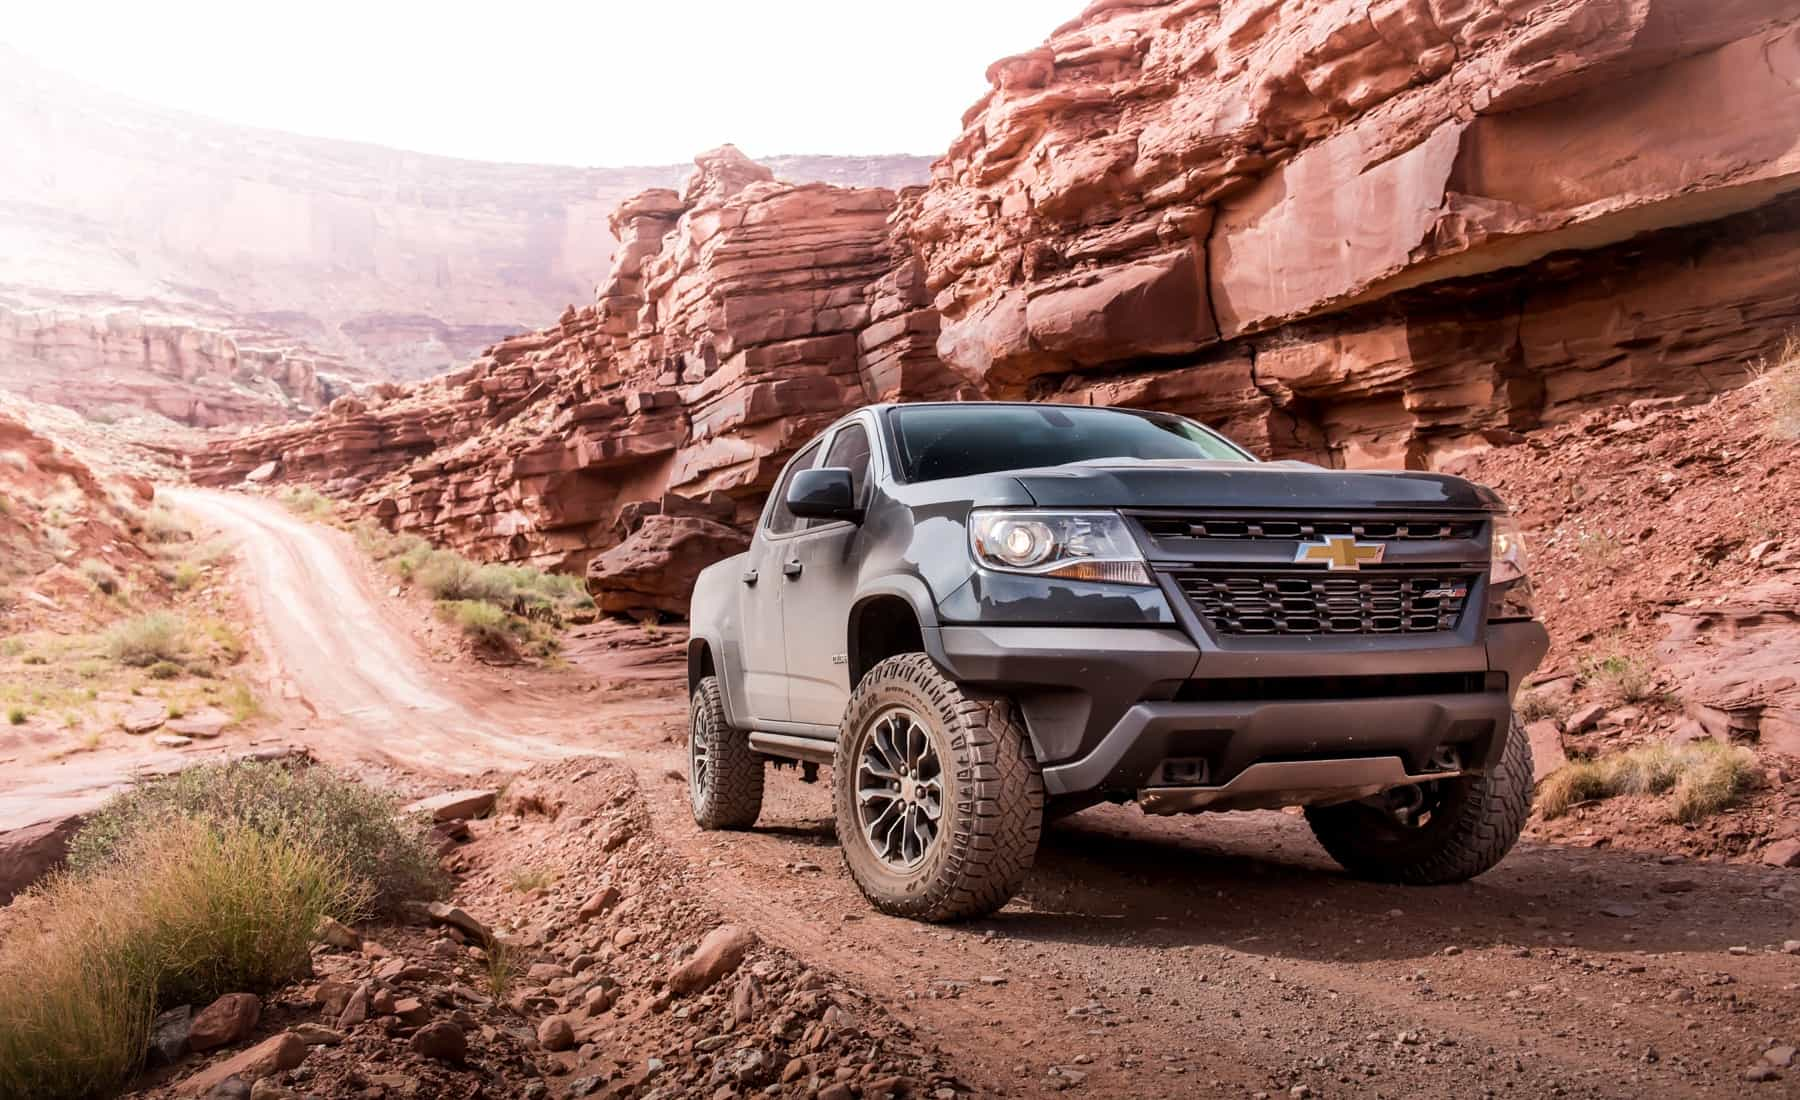 2017 Chevrolet Colorado ZR2 Crew Cab Diesel Exterior Front And Side (Photo 5 of 16)